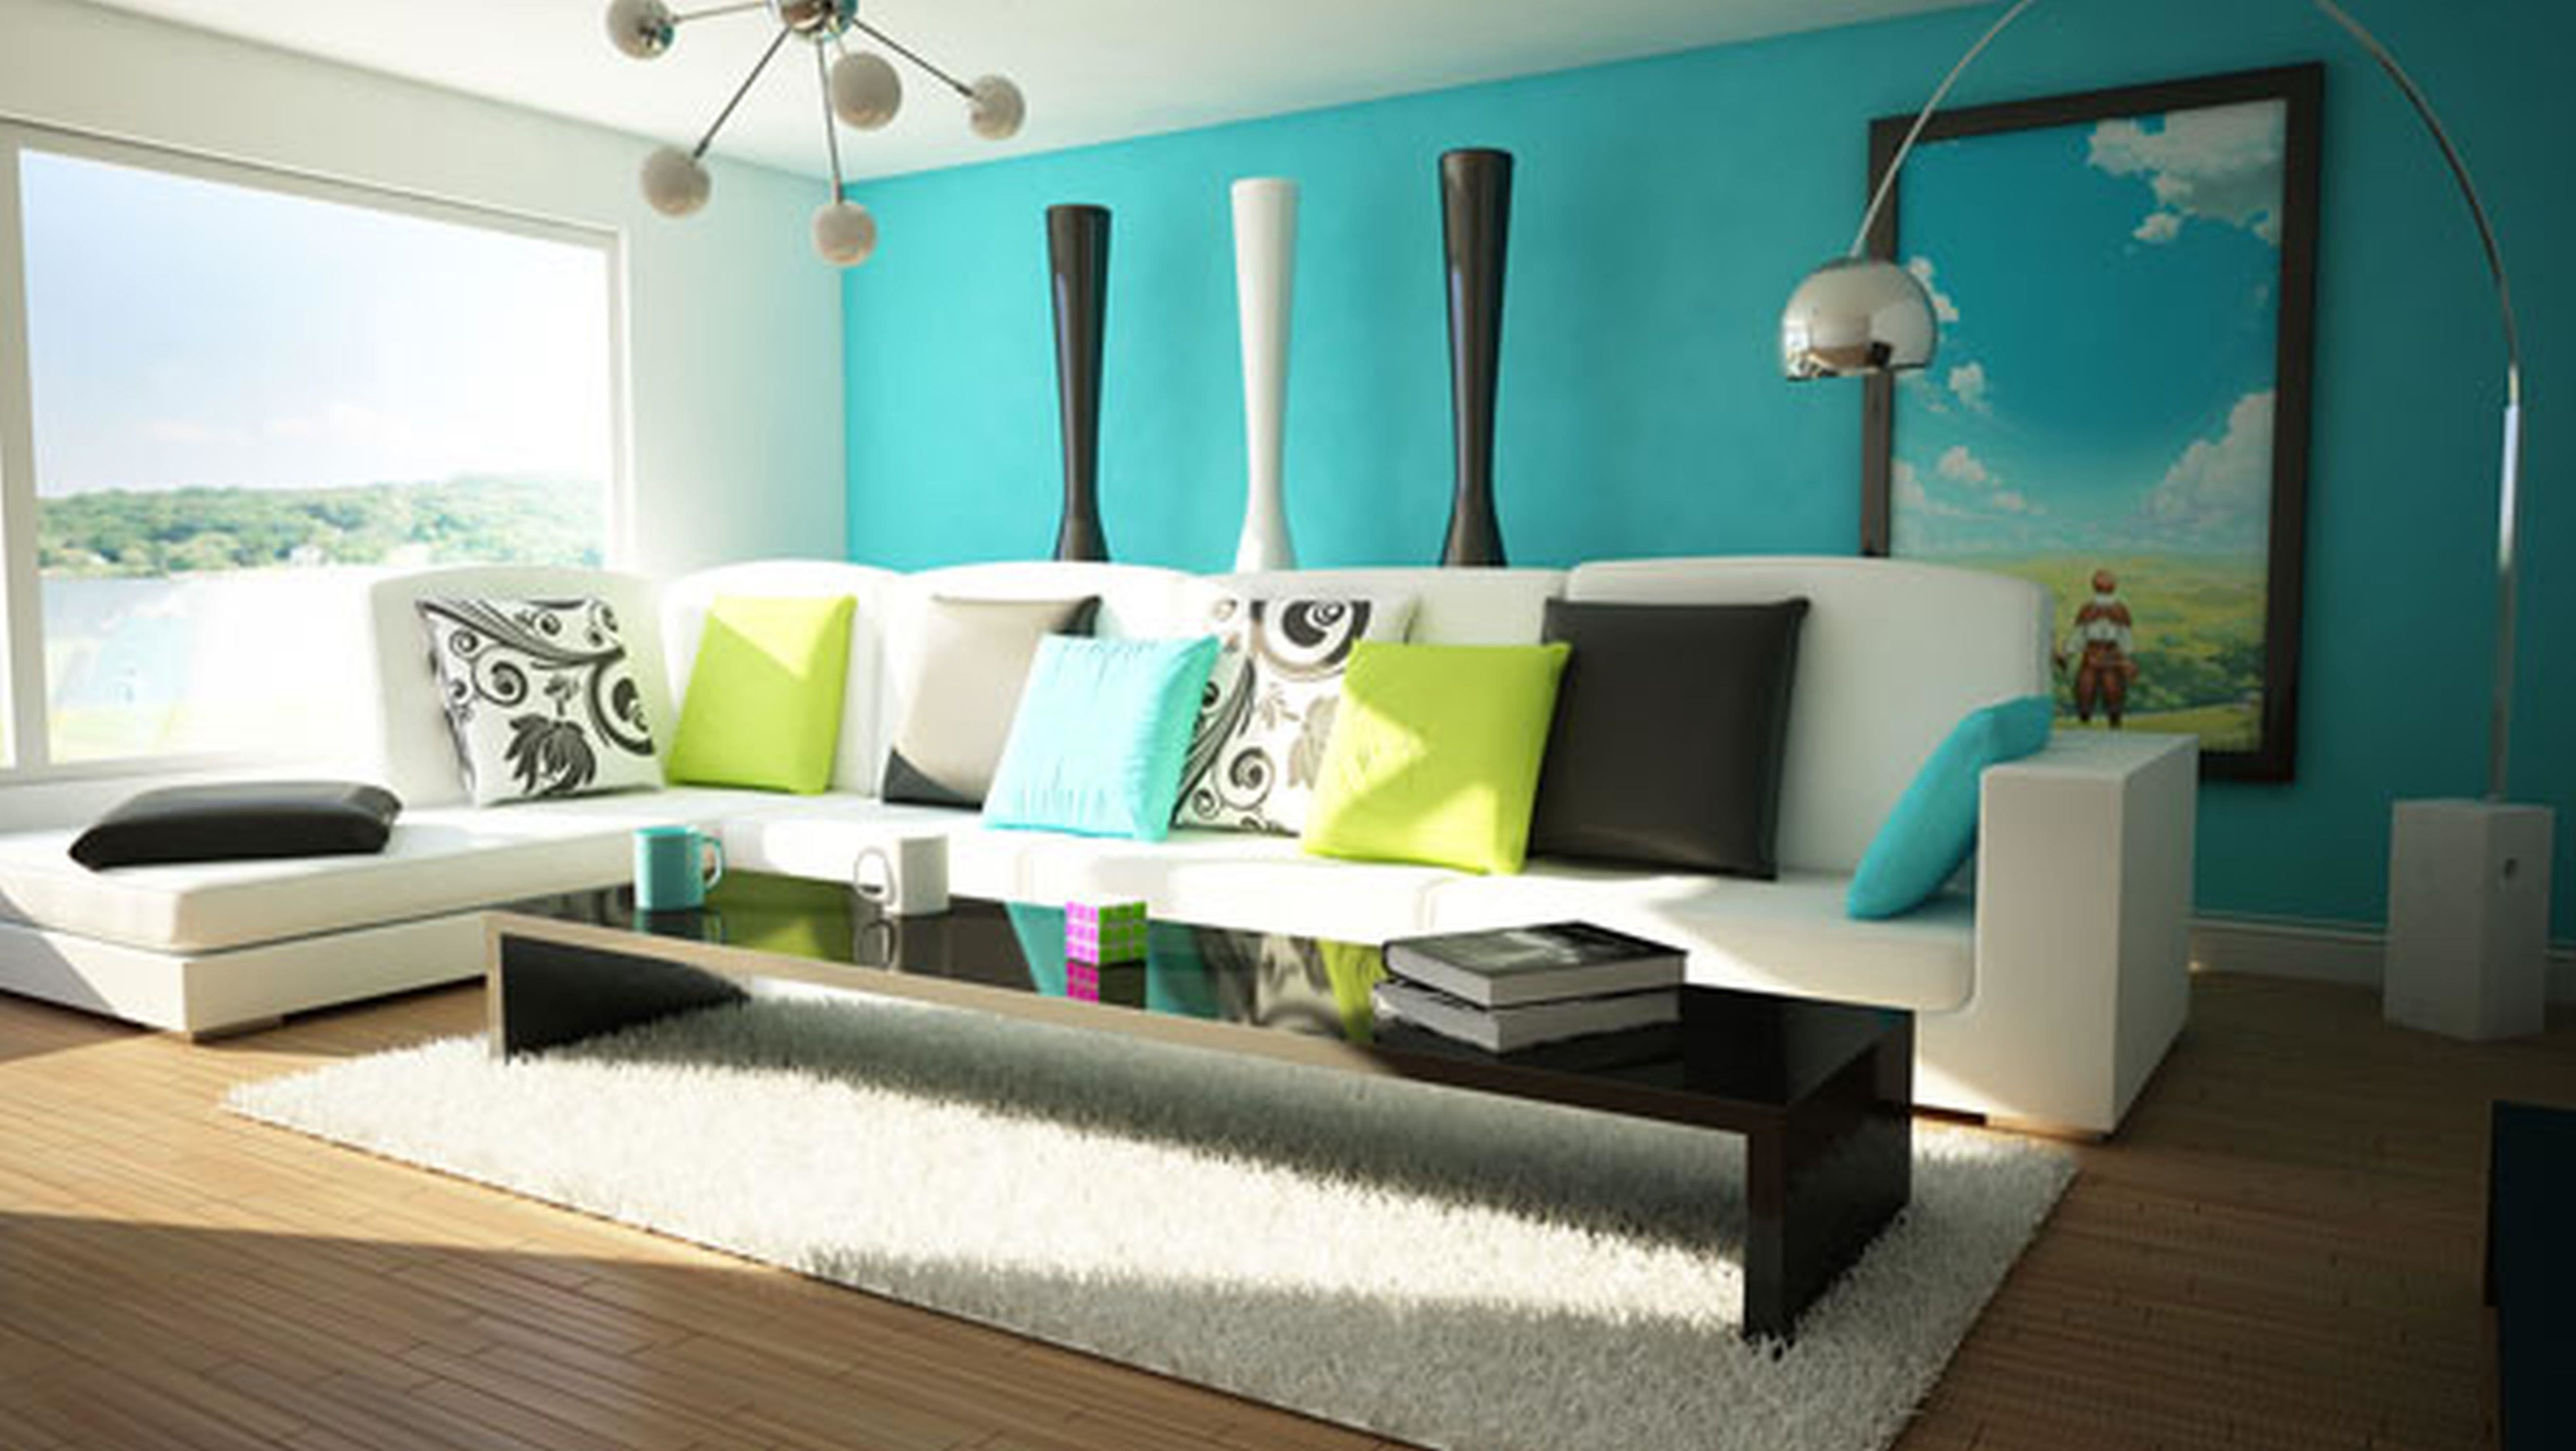 Which color should you prefer for every rooms?